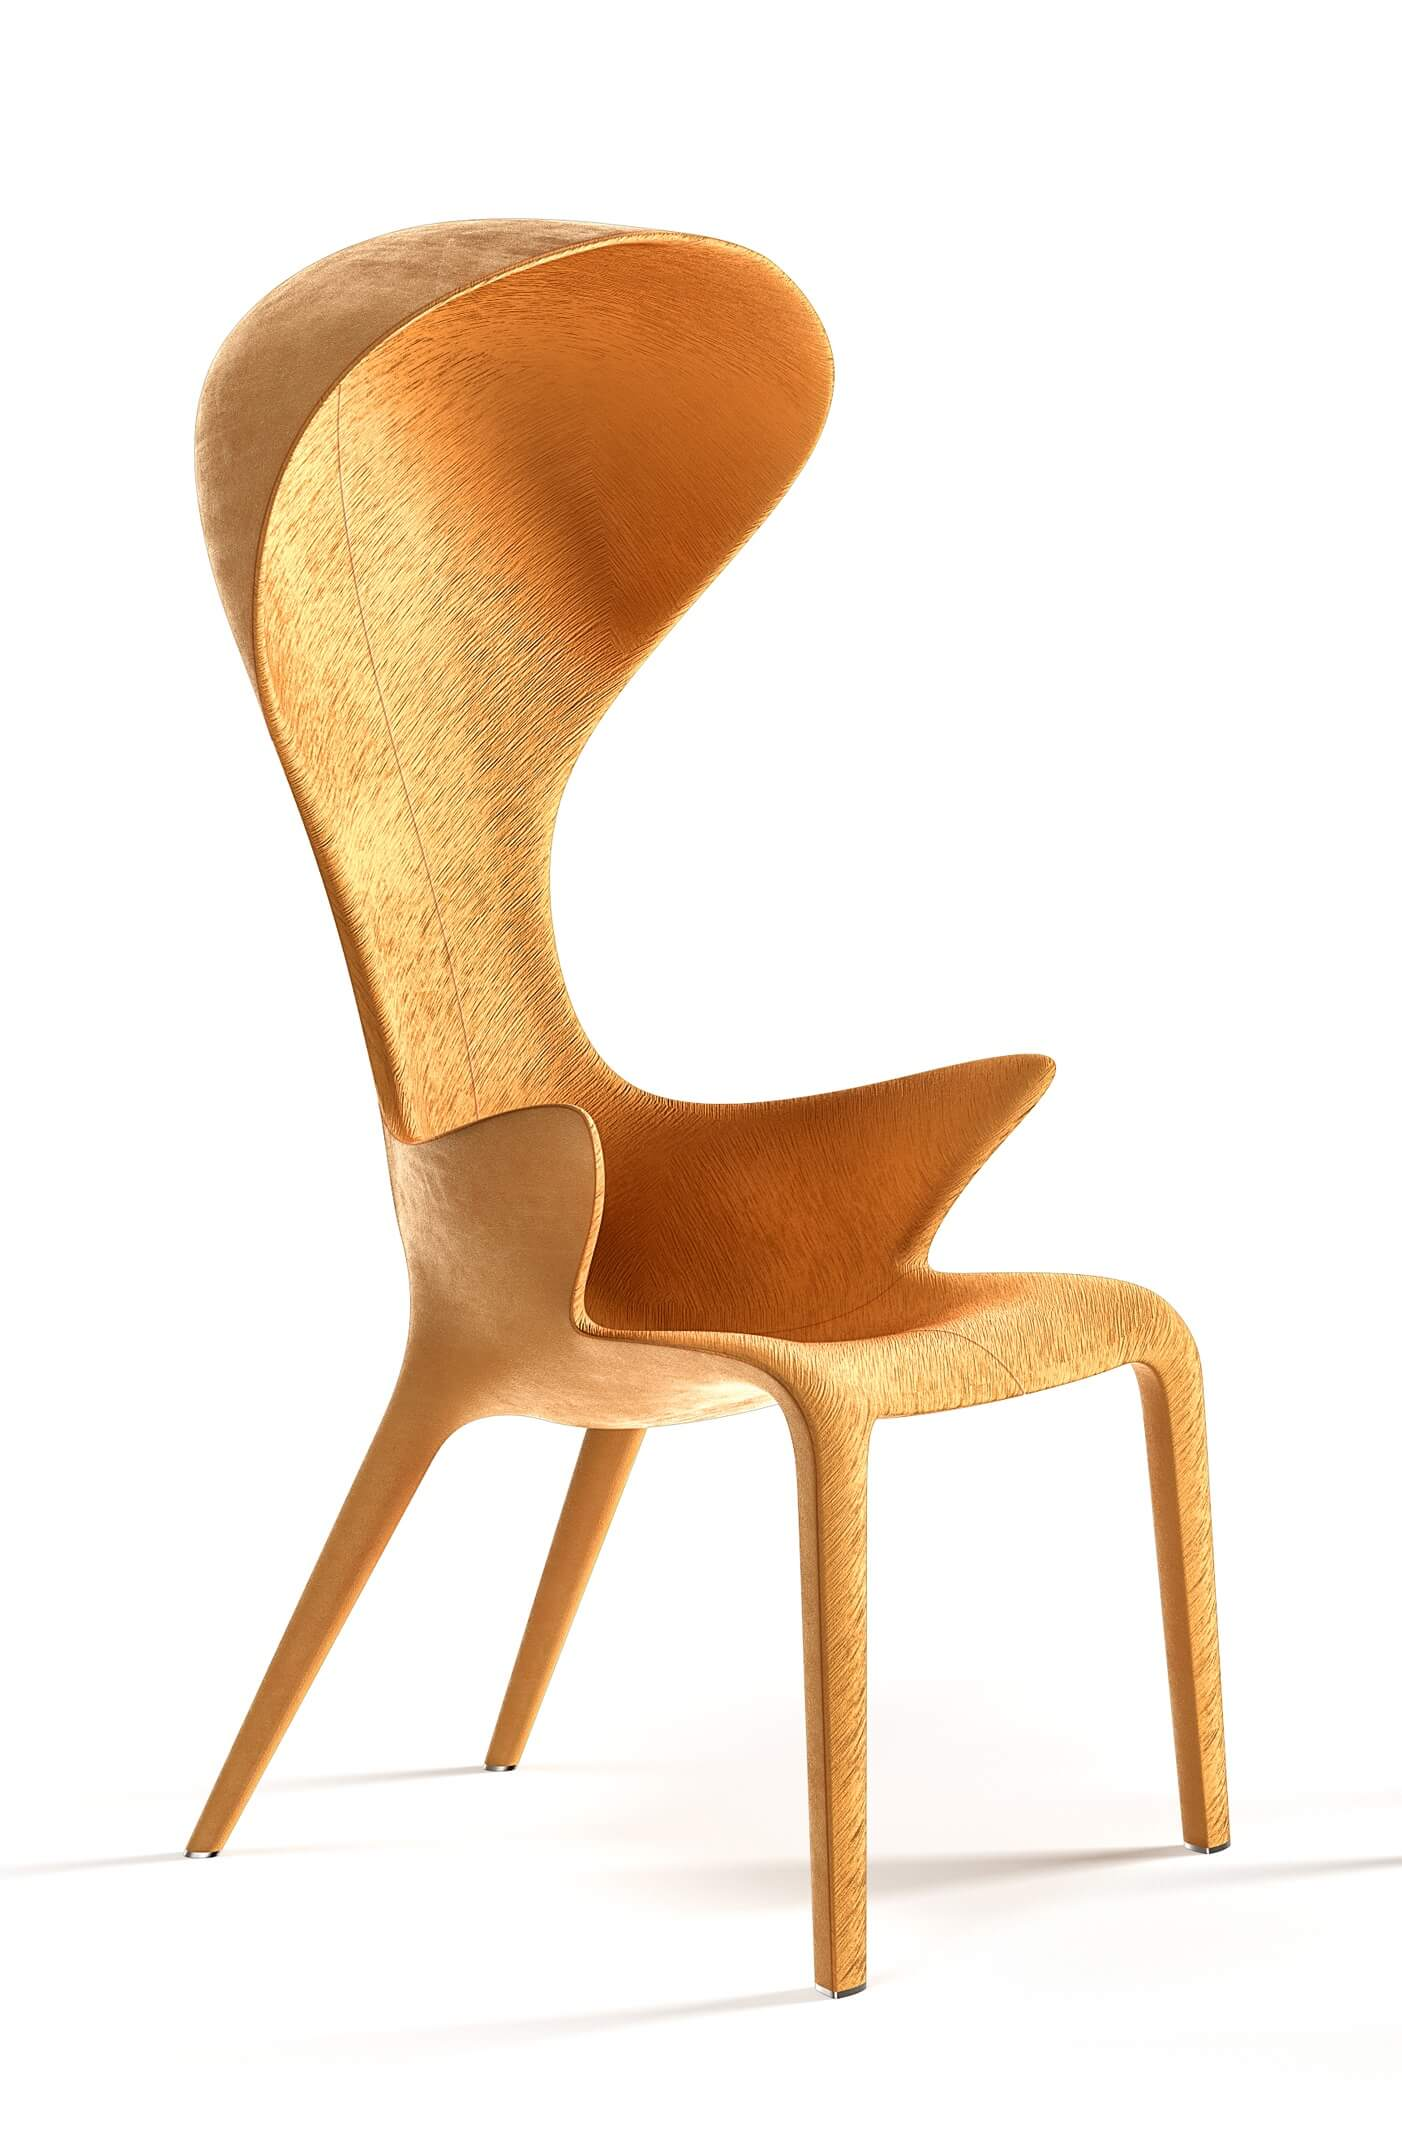 philippe starck Philippe Starck: A Staggering Collection of Armchairs Philippe Starck A Staggering Collection of Armchairs 6